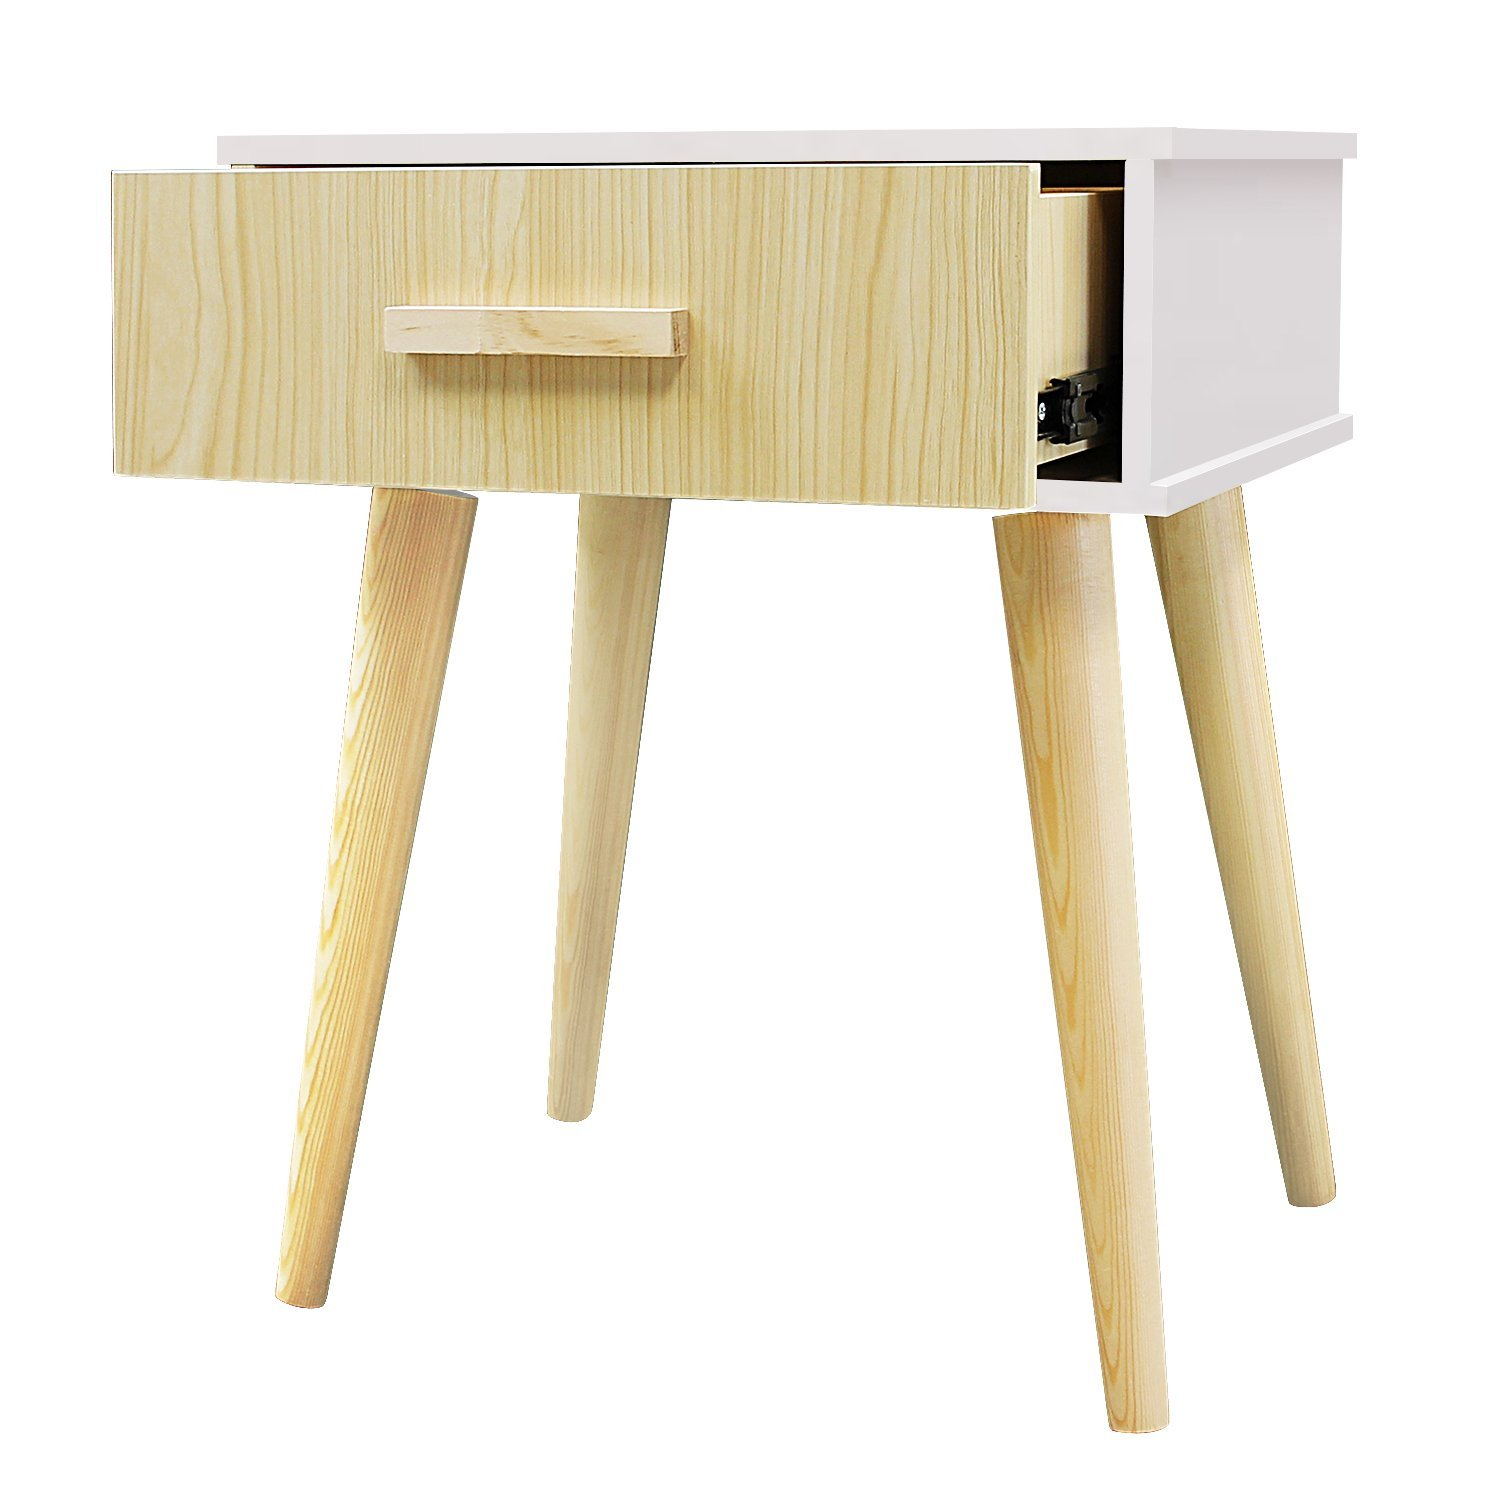 Jerry & Maggie Nightstand Modern Fashion 4 Thin Long Legs Space Station - 1 Tier Cubic Night Stand Storage Bedside Table with 2 Drawer Real Natural Paulownia Wood   White & Wood Drawer